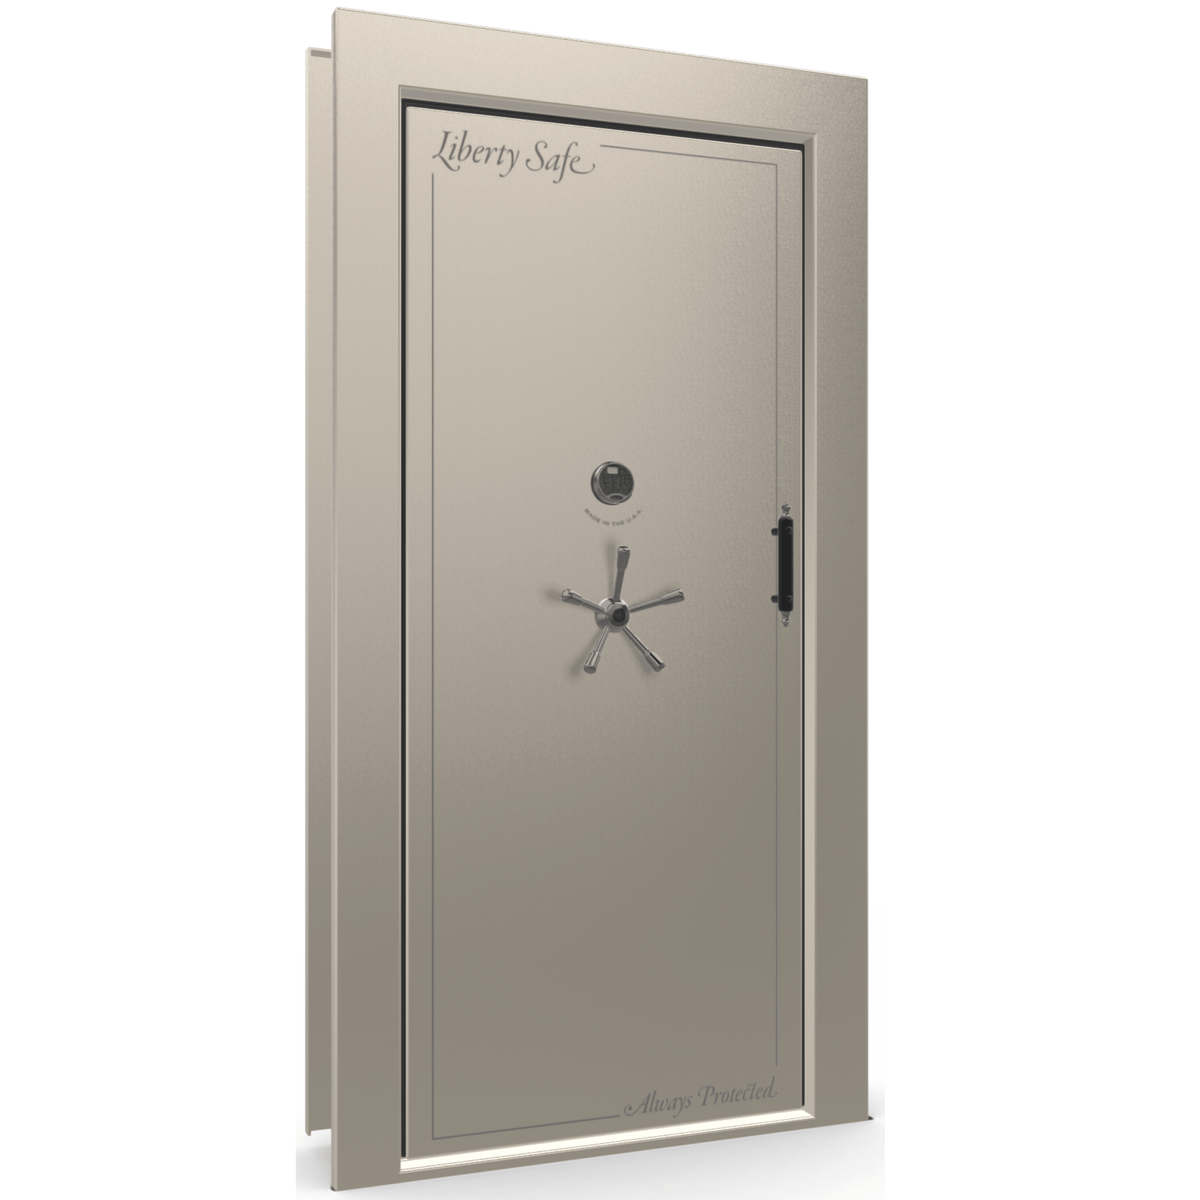 "Vault Door Left Inswing | Champagne Gloss | Black Electronic Lock | 81-85""(H) x 27-42""(W) x 7-10""(D)"